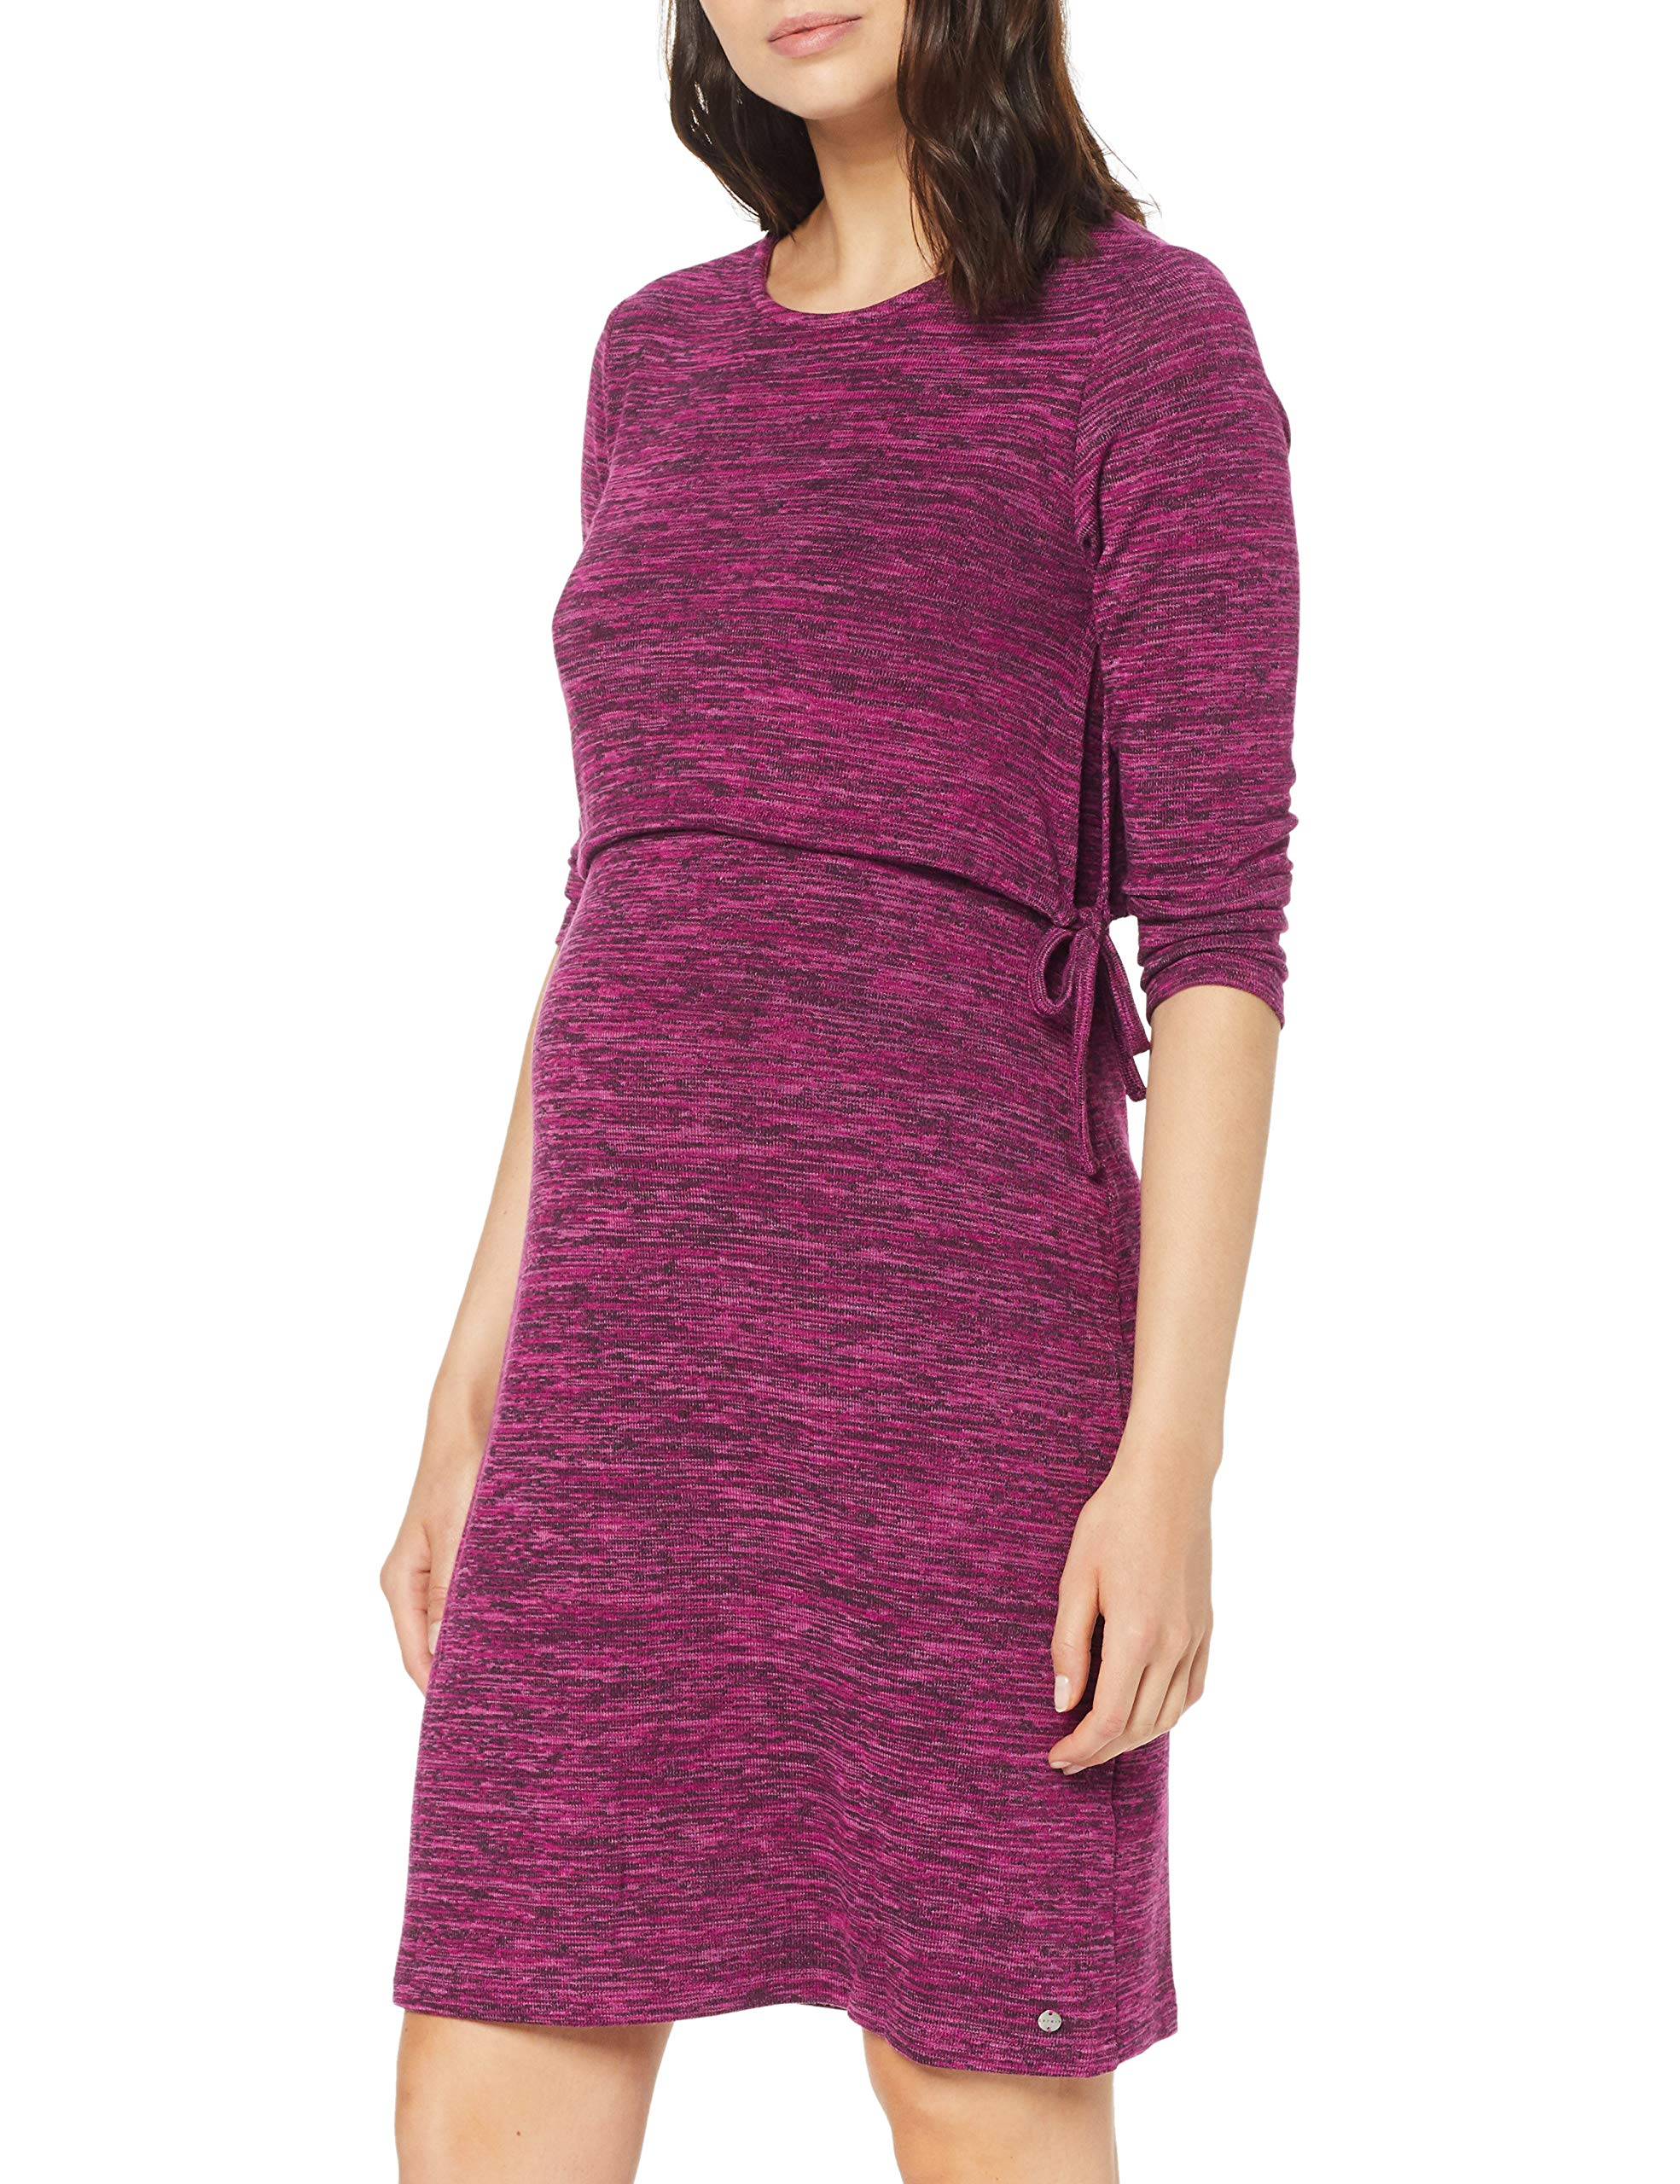 4 Maternity 60642taille 3 Sl FabricantLargeFemme Red RobeVioletplum Nursing Esprit Dress VpMqzSU